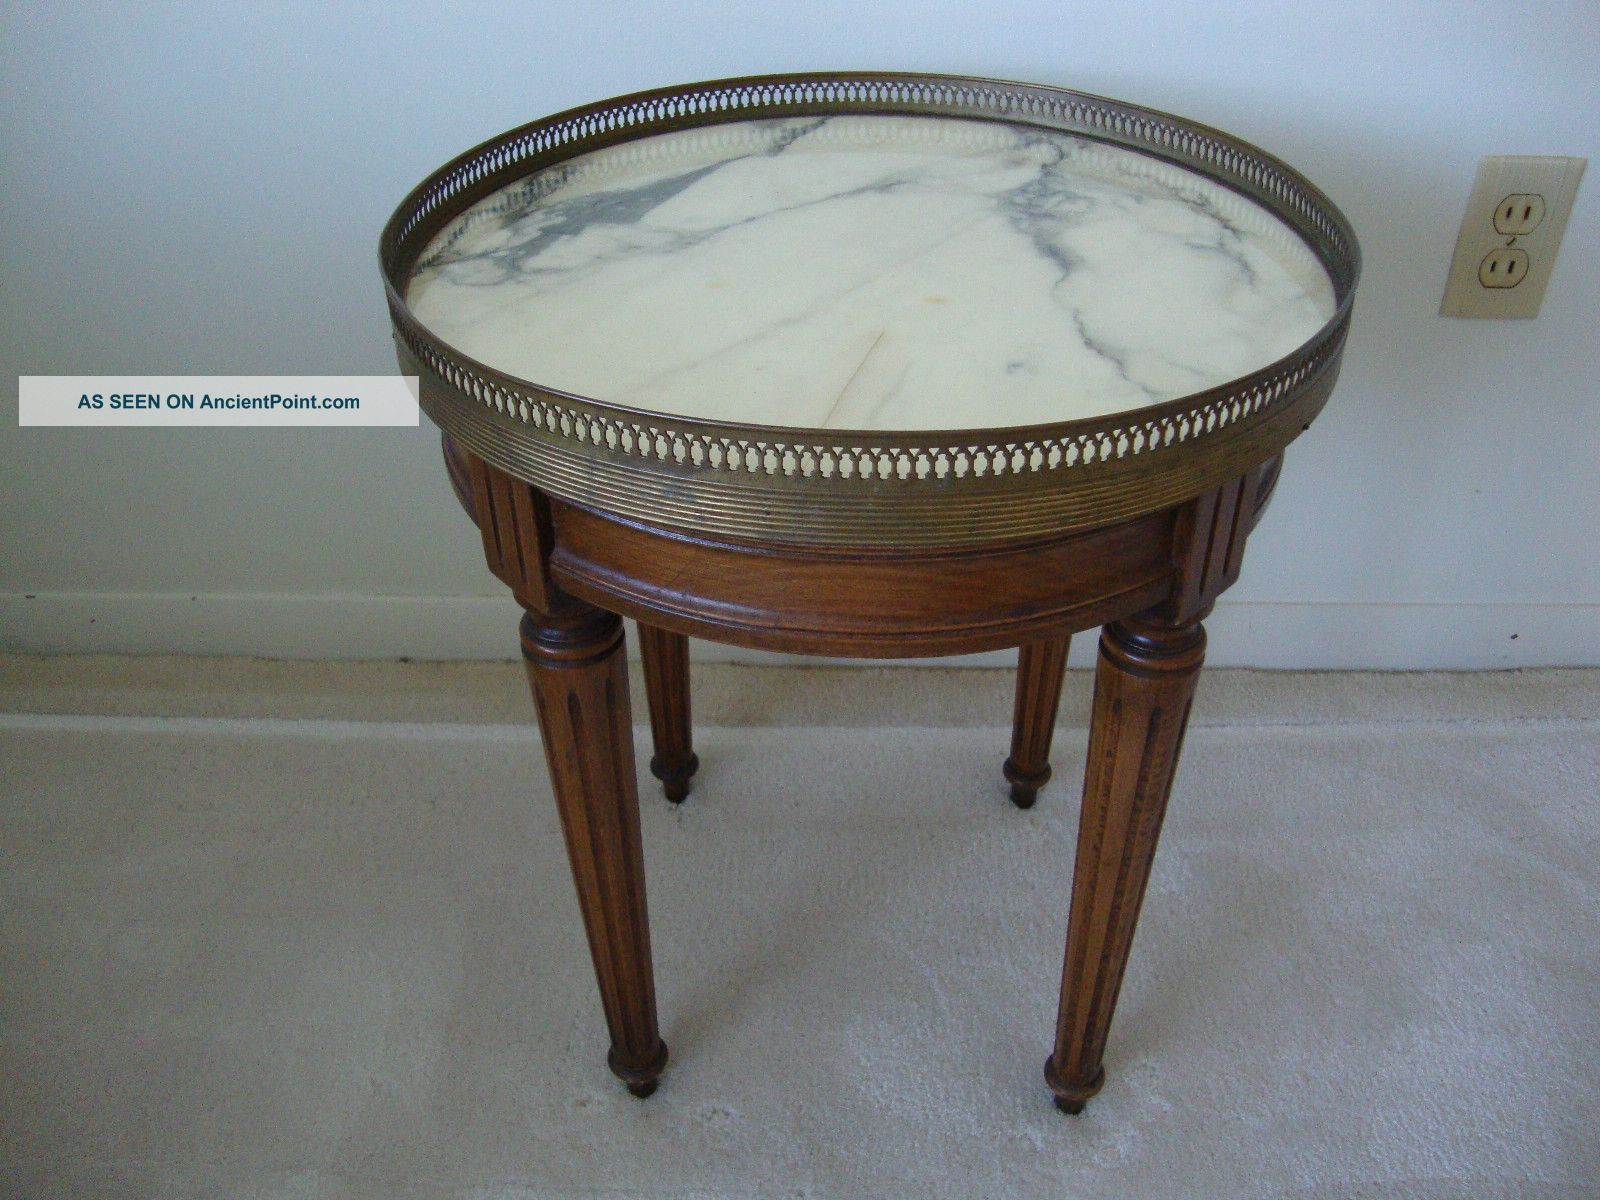 Vintage Marble Top Occasional Table 1900-1950 photo